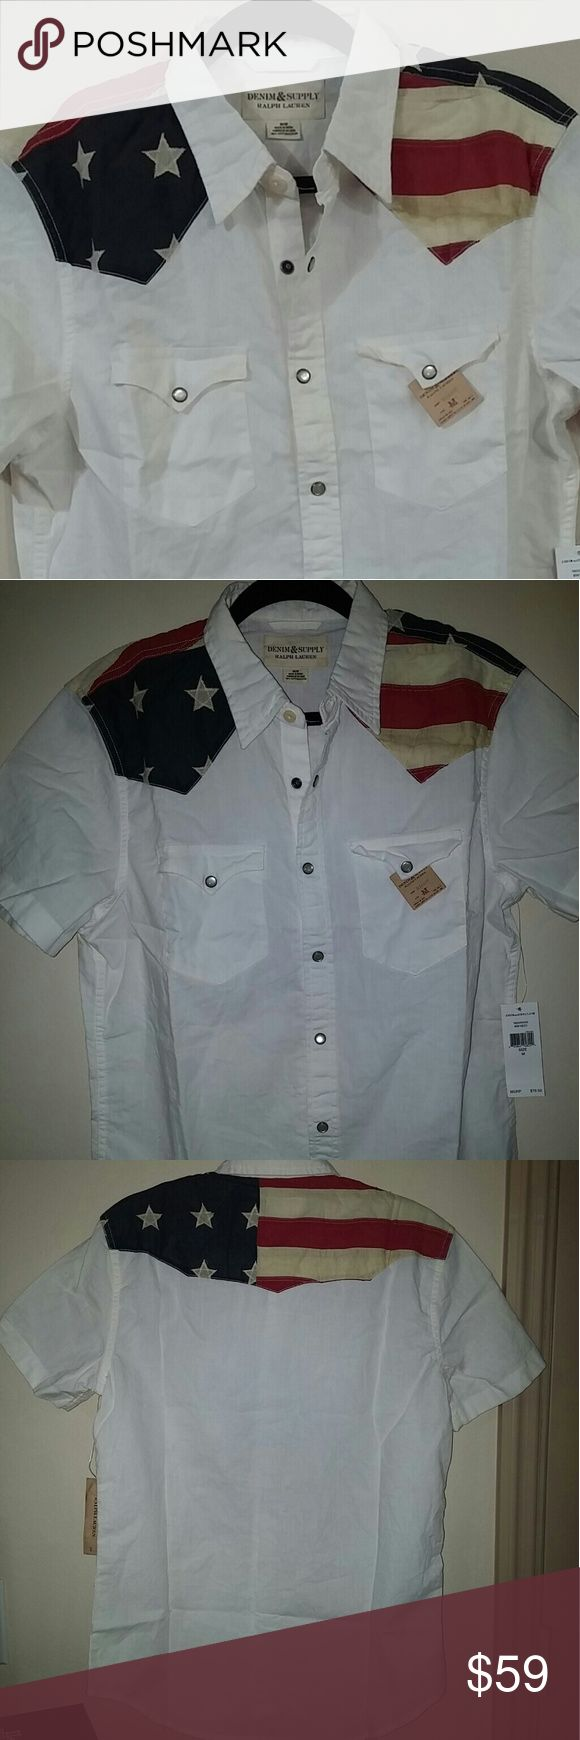 Denim & Supply RL American Flag Pearl Snap Shirt Denim & Supply Ralph Lauren Men's American Flag Pearl Snap Shirt  A cool take on Americana-inspired style, this cotton button down shirt features a tonal stars-and-stripes pattern.  100% cotton Denim & Supply Ralph Lauren Shirts Casual Button Down Shirts